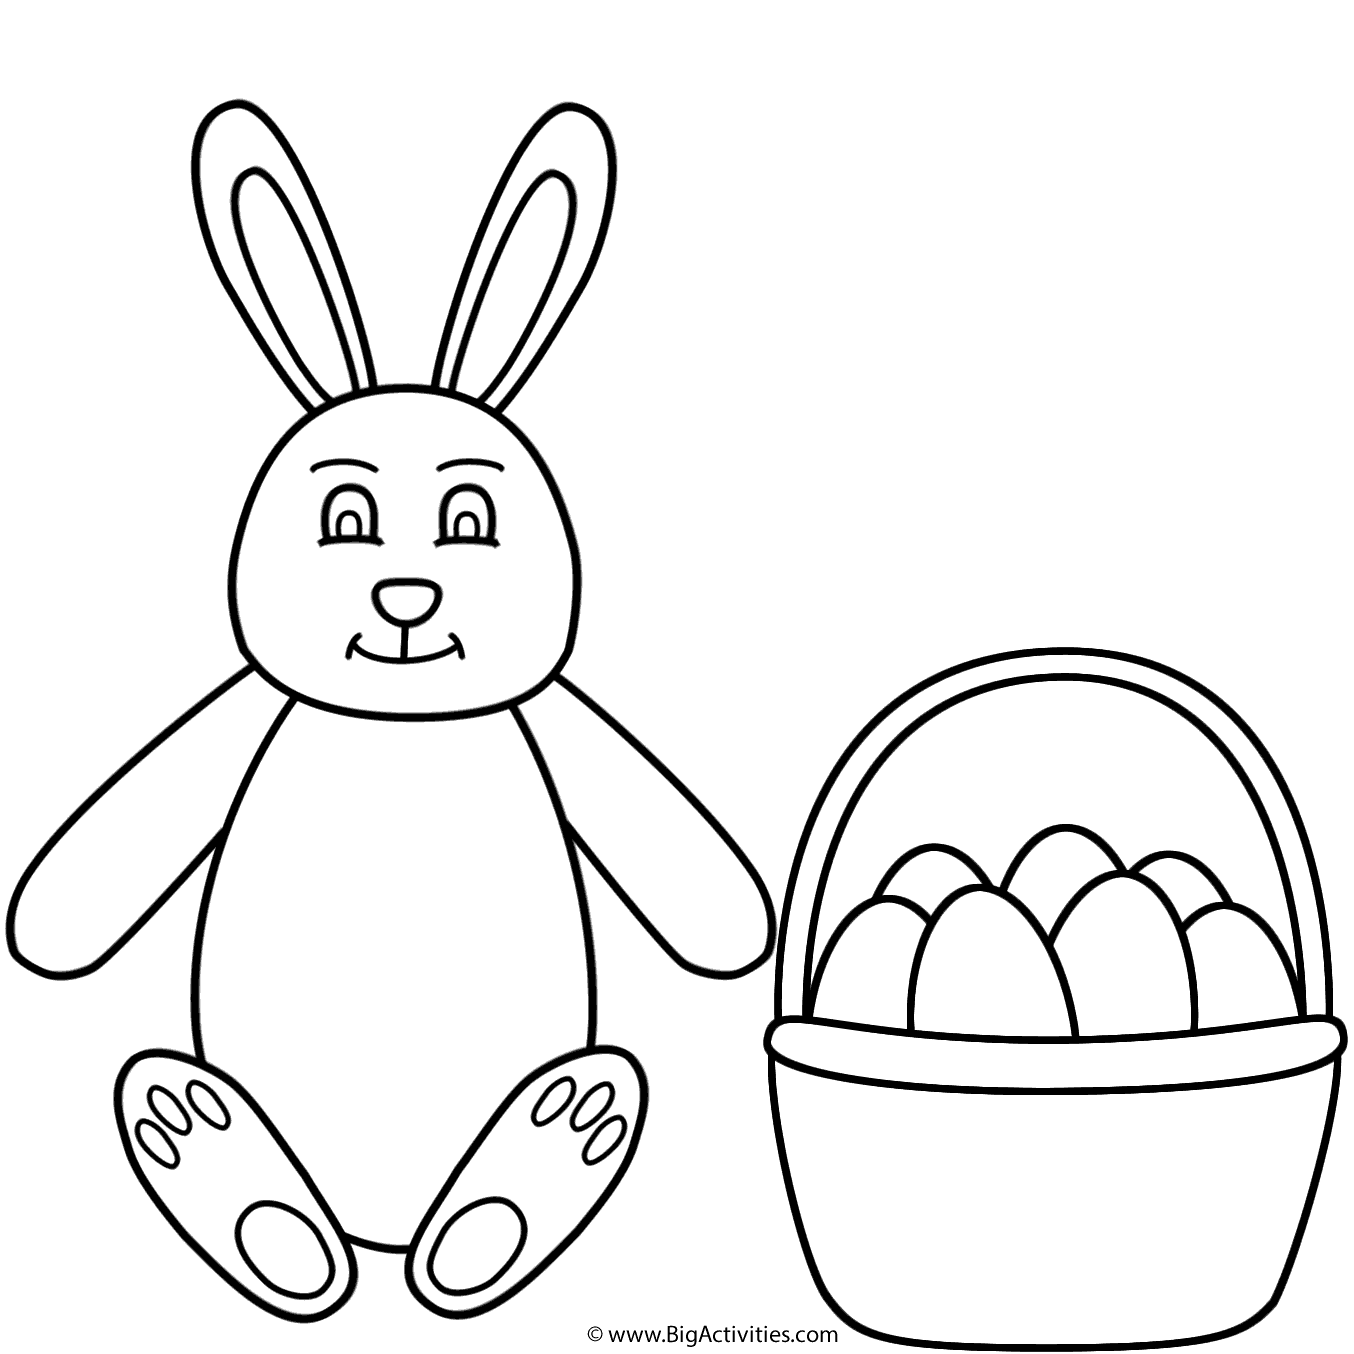 1354x1354 Easter Bunny Sitting And Basket Of Eggs